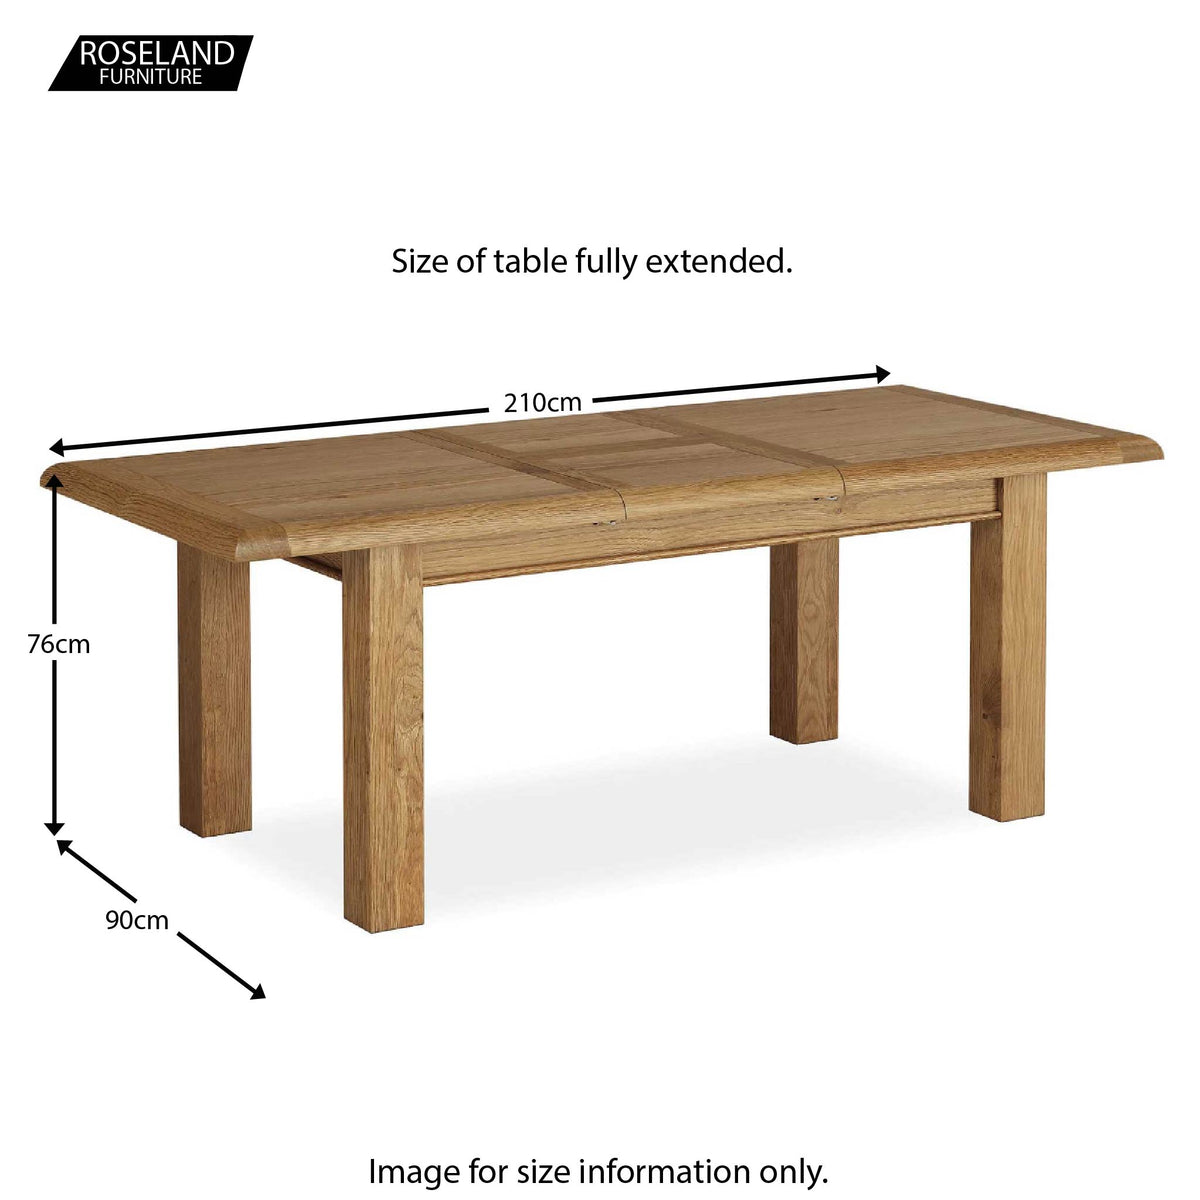 Canterbury Wooden Oak Extending Dining Table - Size Guide Table Fully Extended